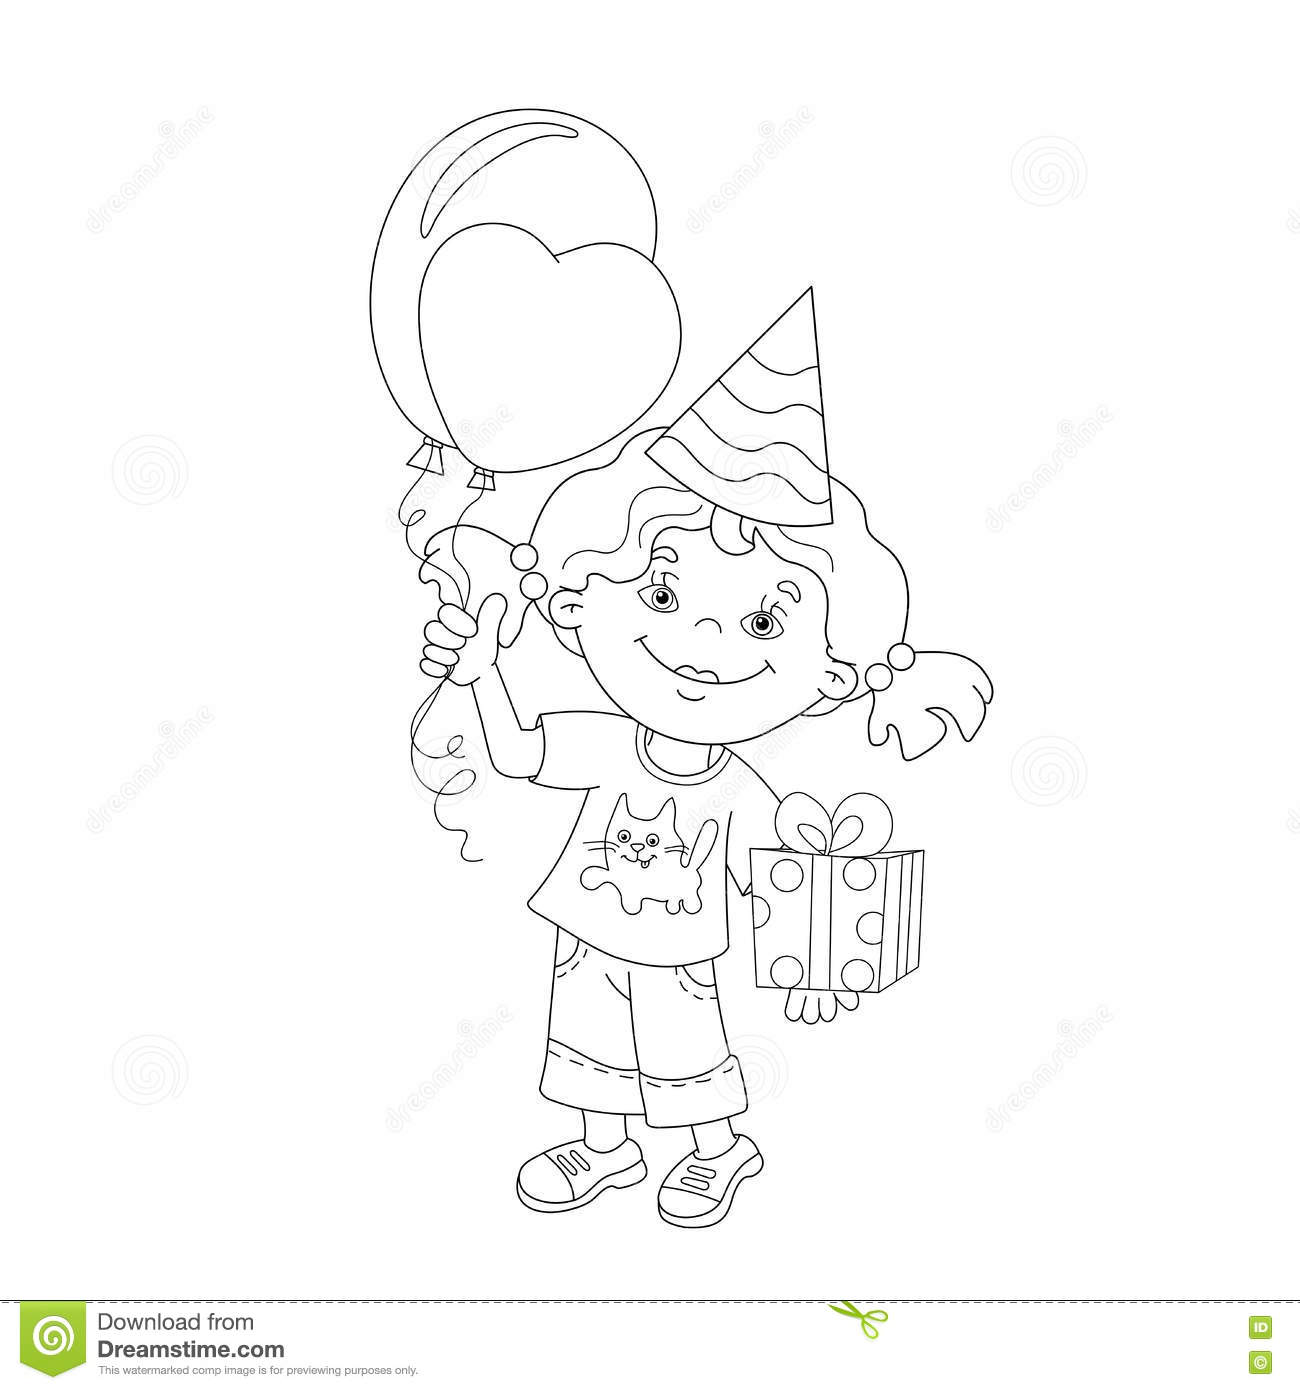 coloring page outline of with gift and balloons stock vector